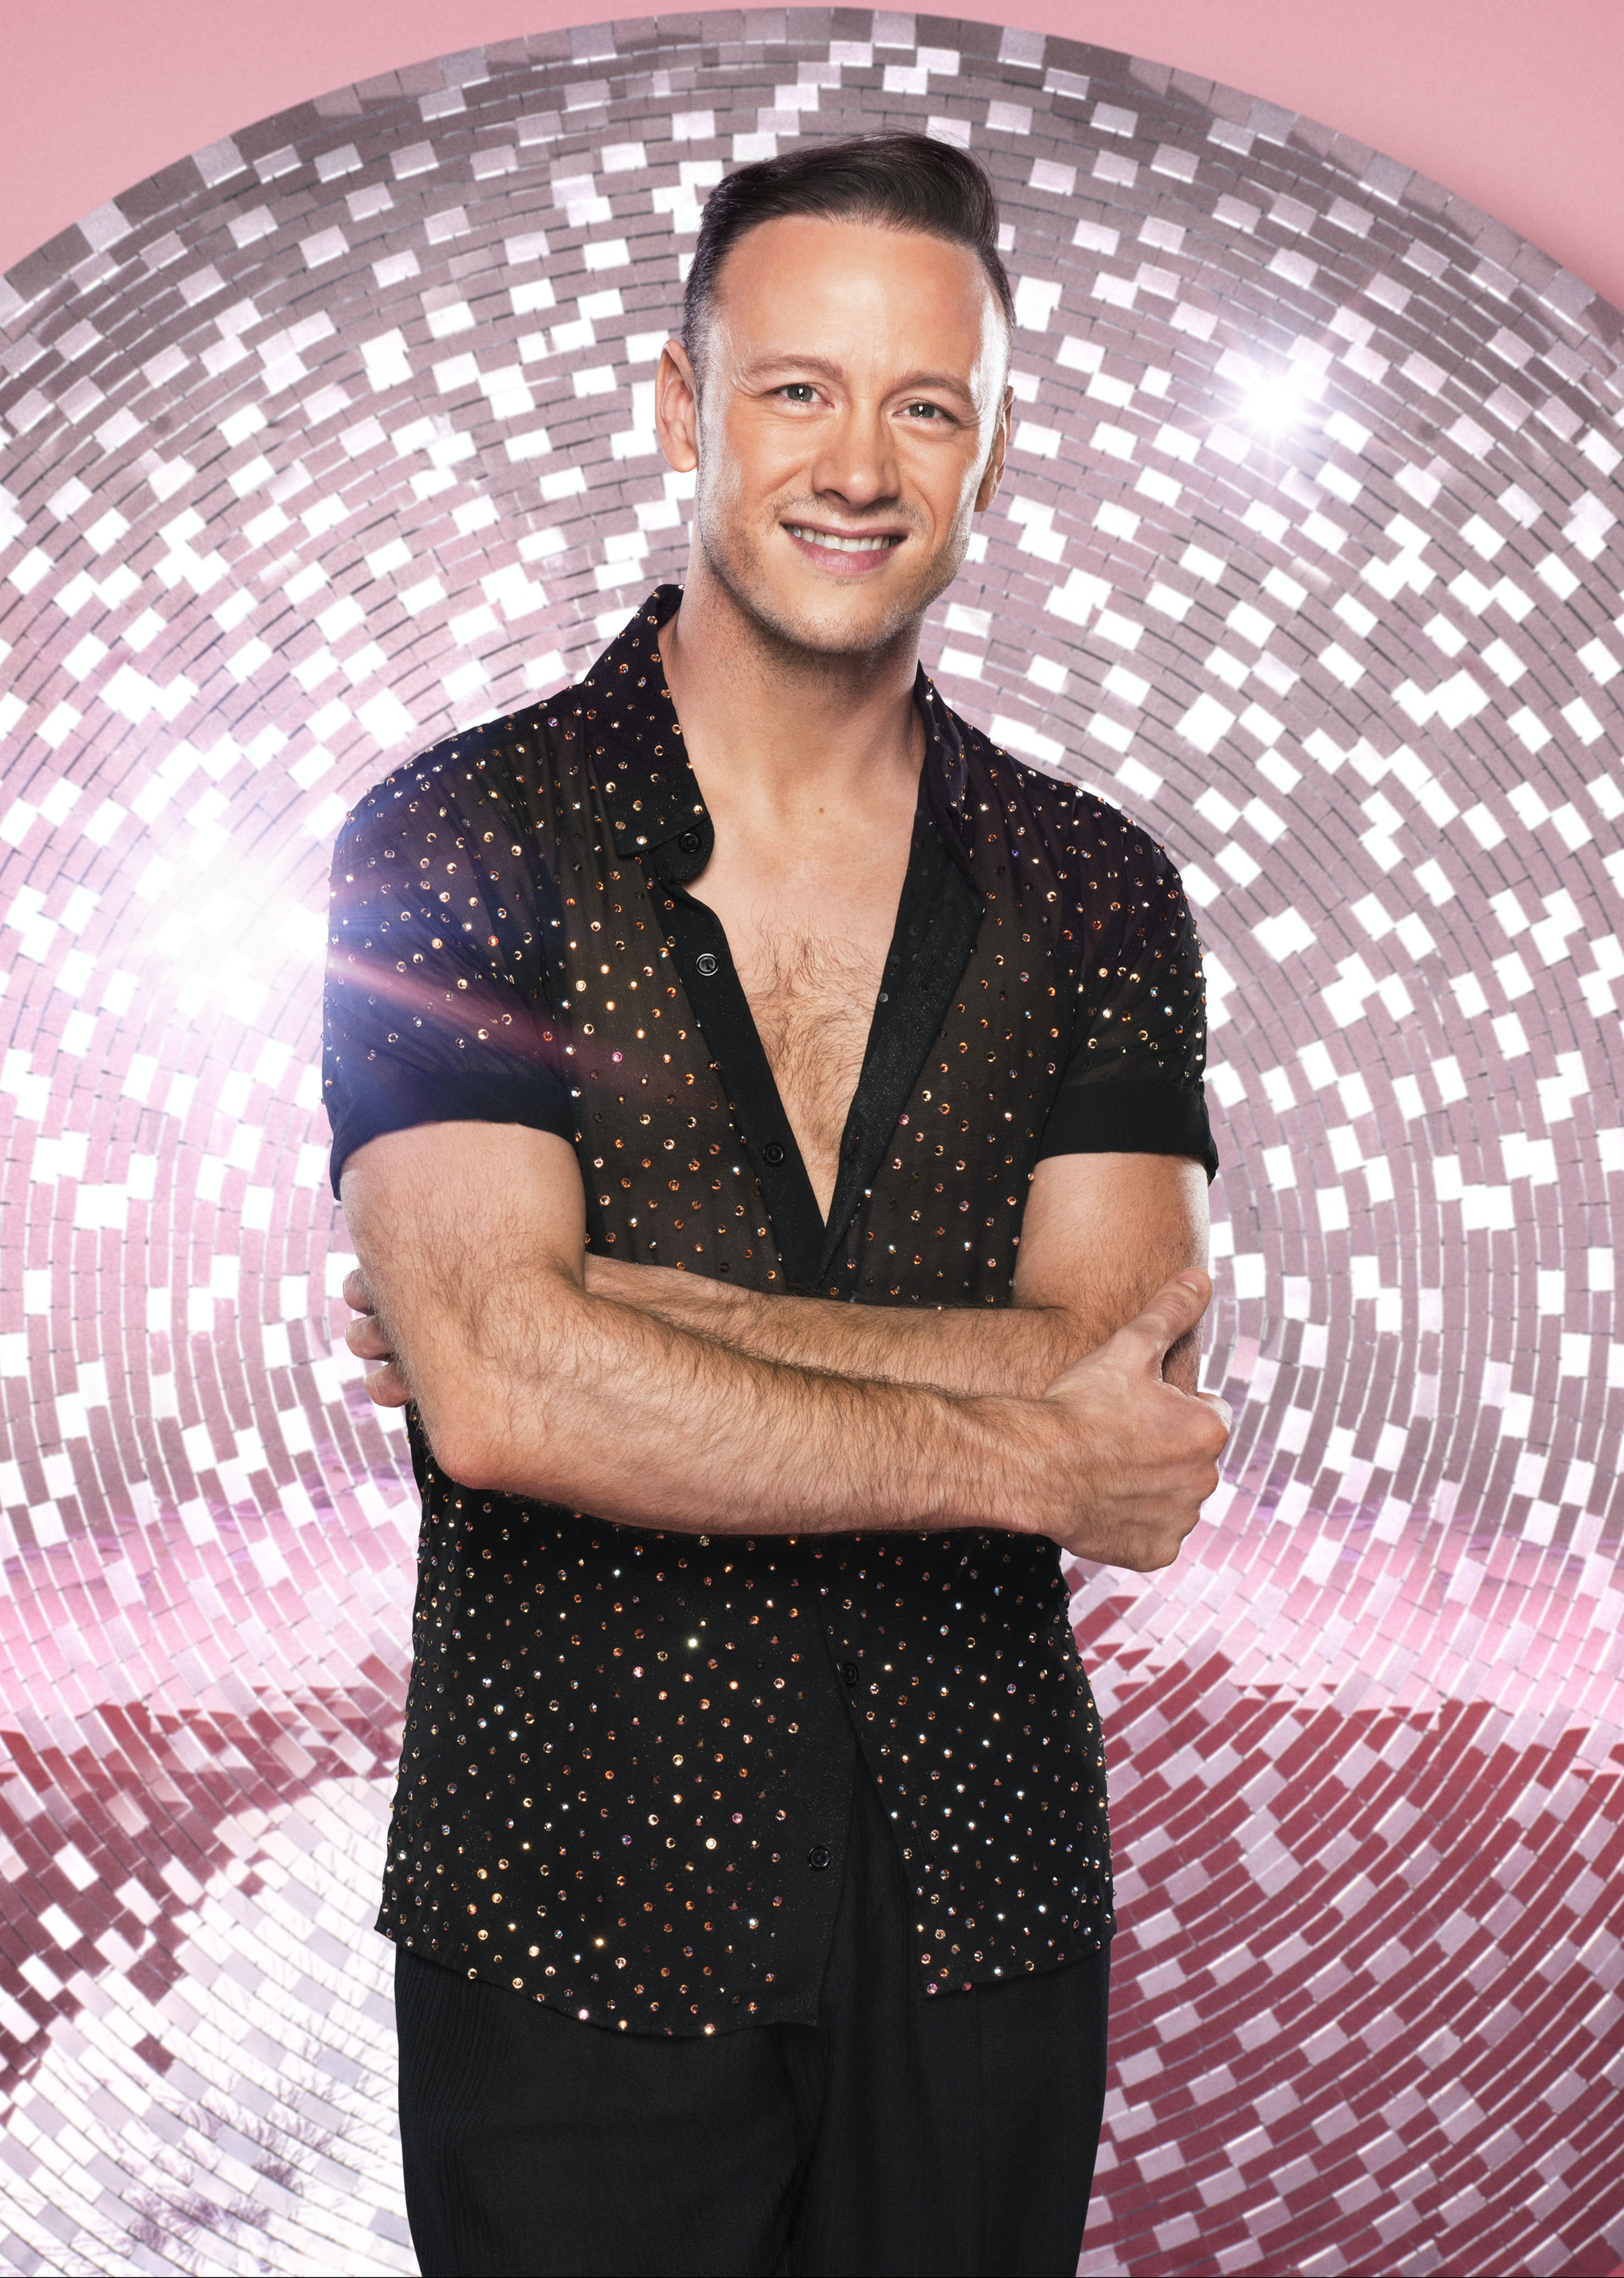 Strictly Come Dancing Betting Odds: Ray Gone, Who'll Win - 2019 year